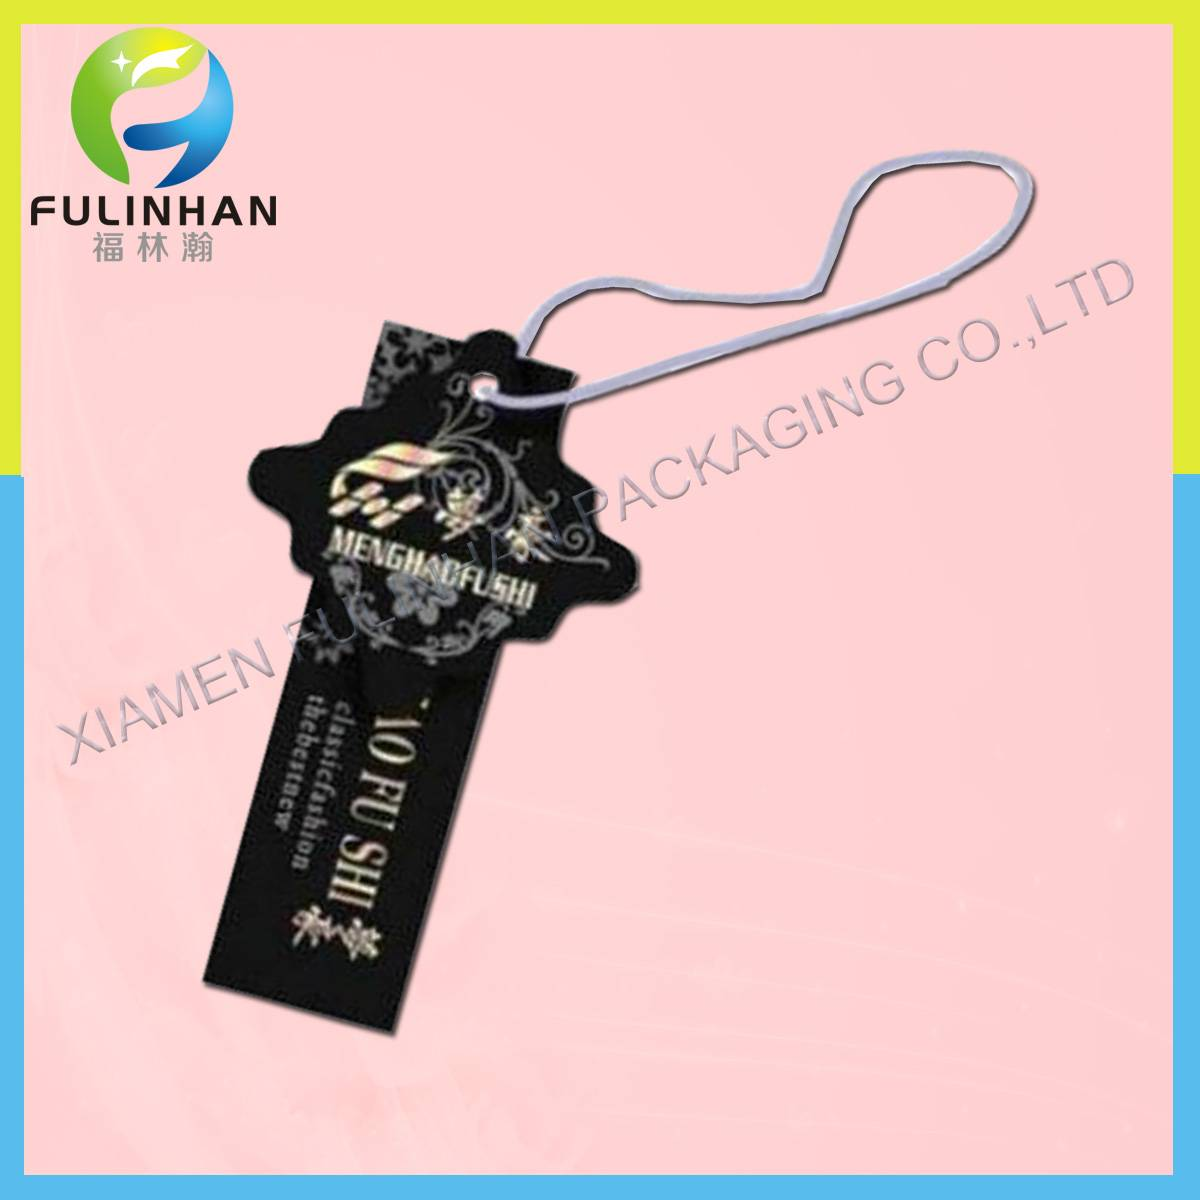 China made Garment tags